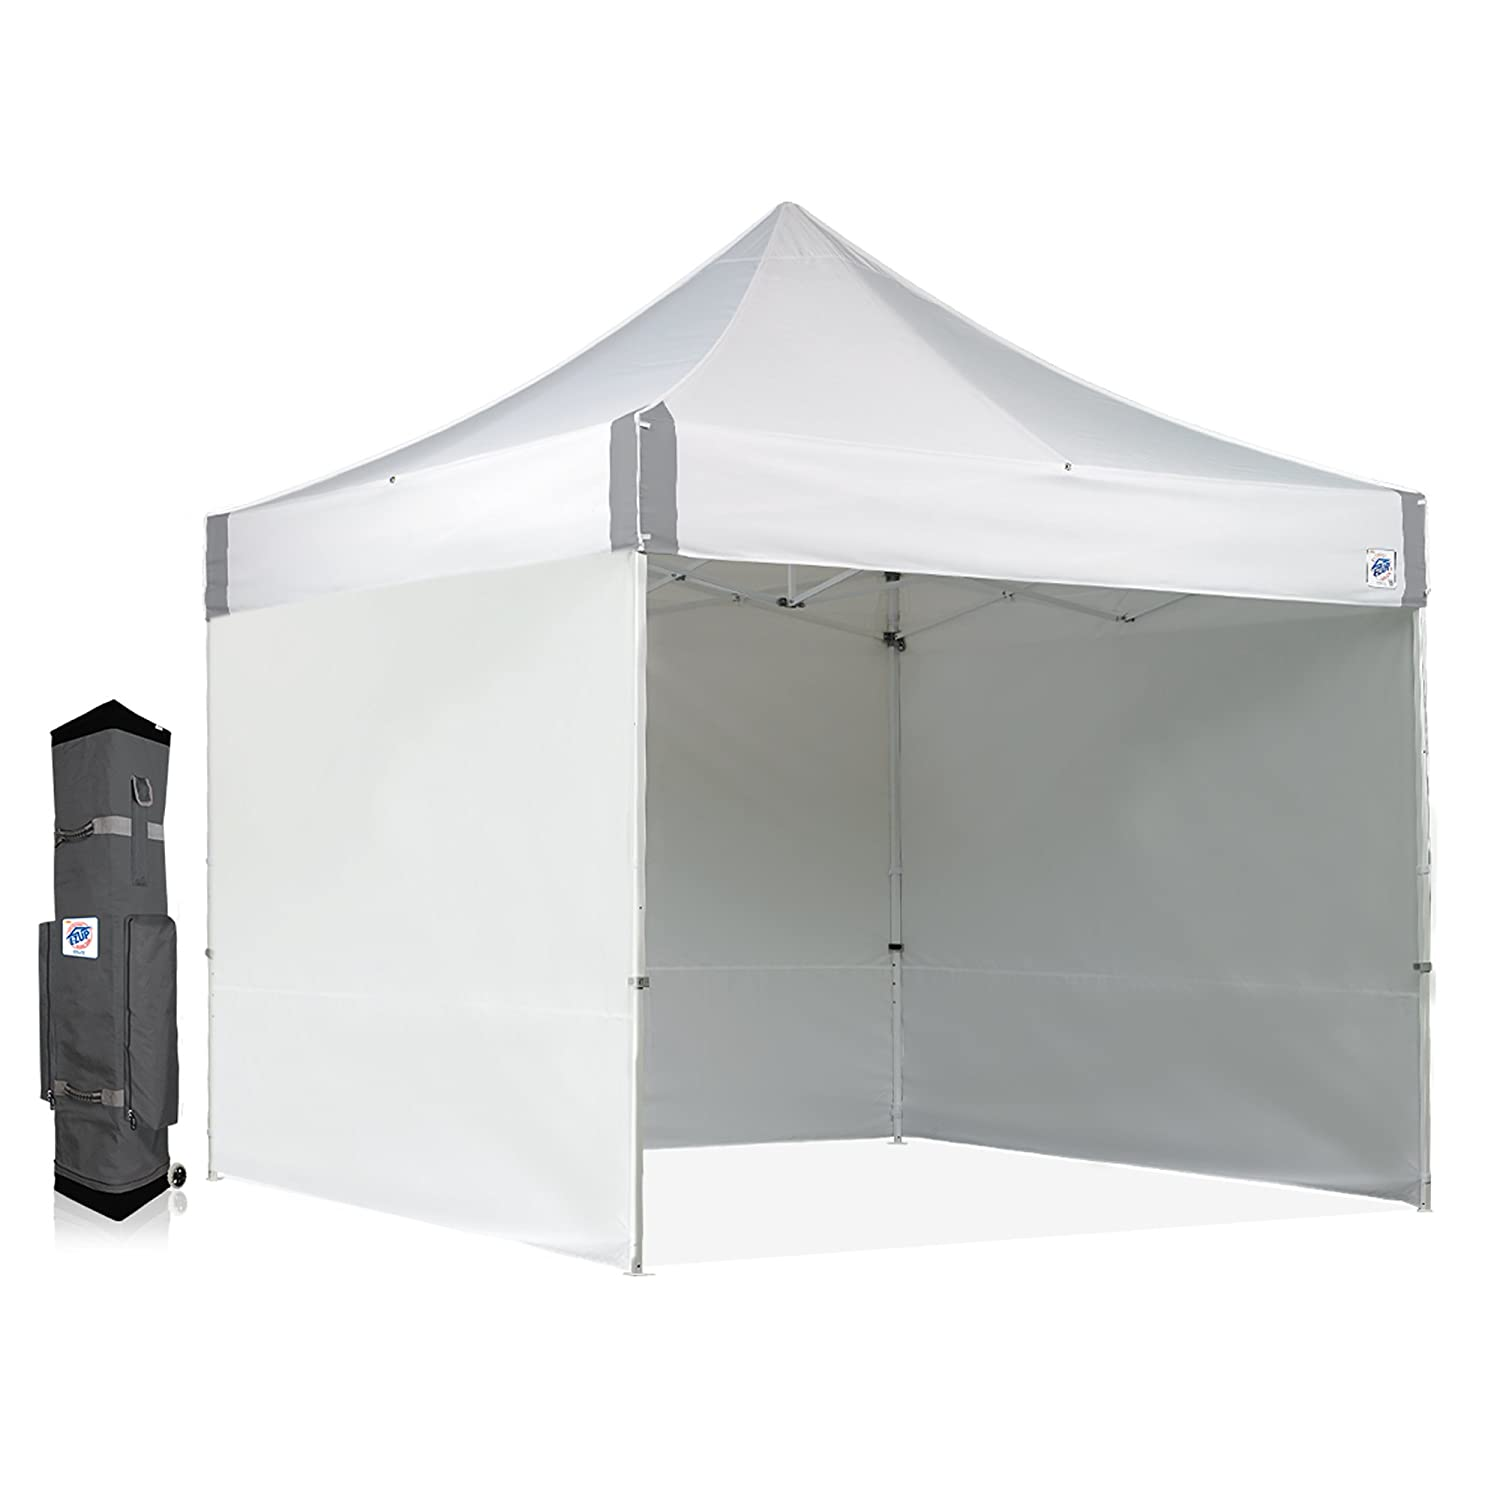 Amazon com : E-Z UP ES100S Instant Shelter Canopy, 10 by 10', White